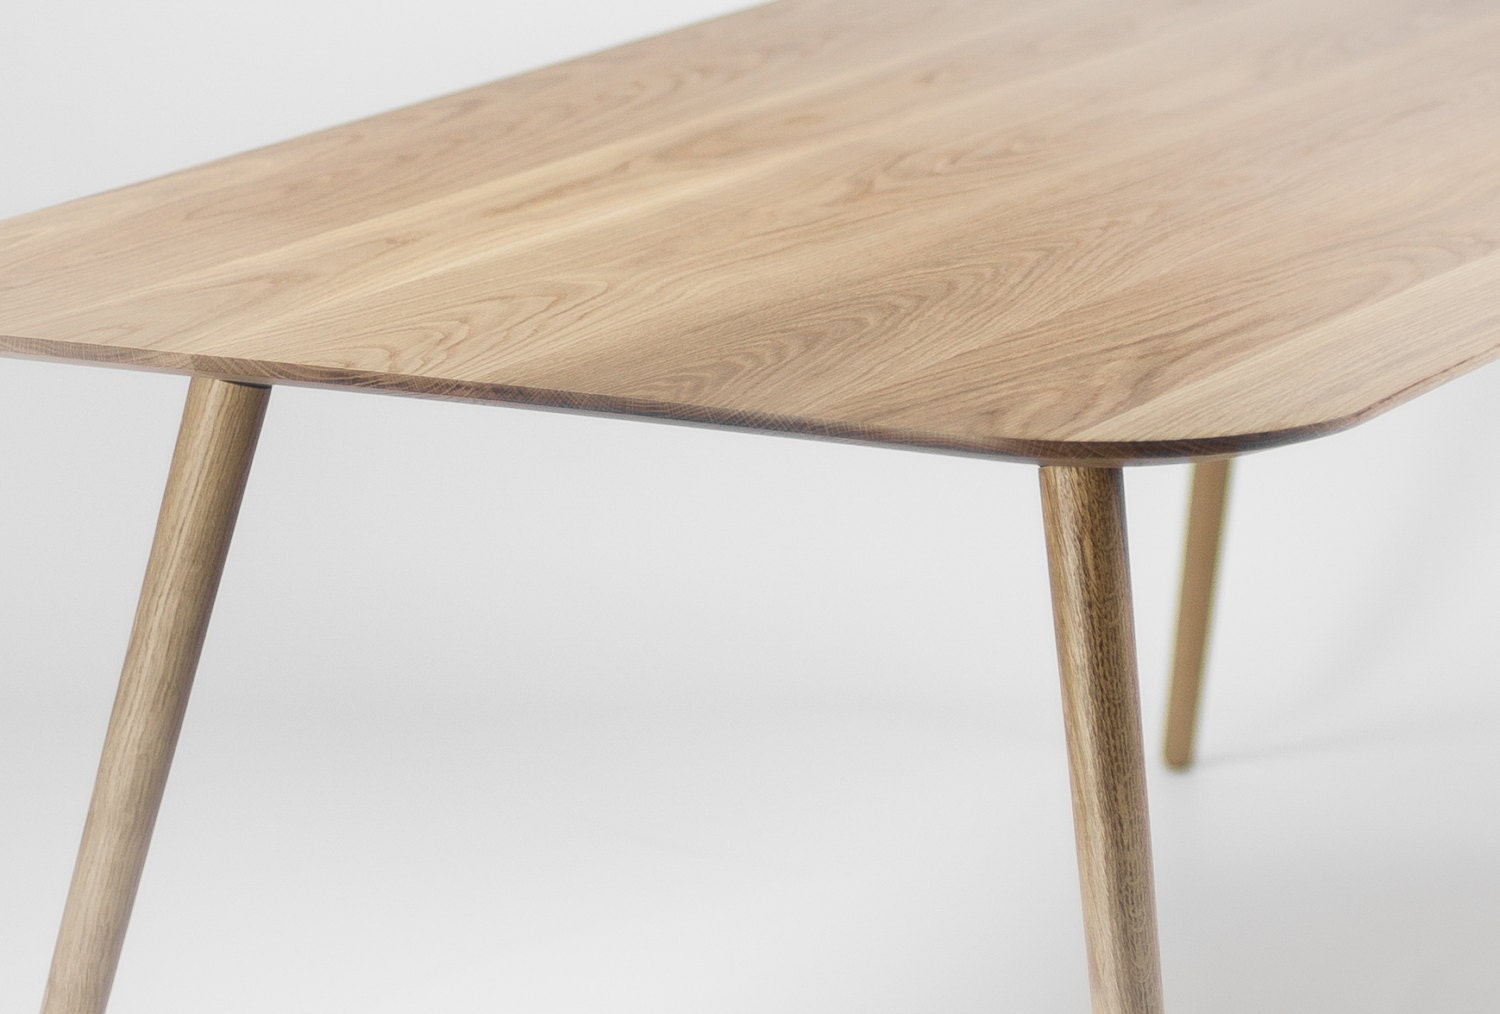 Dining Table In Solid Oak Modern Mid Century Scandinavian - Mid century oak dining table